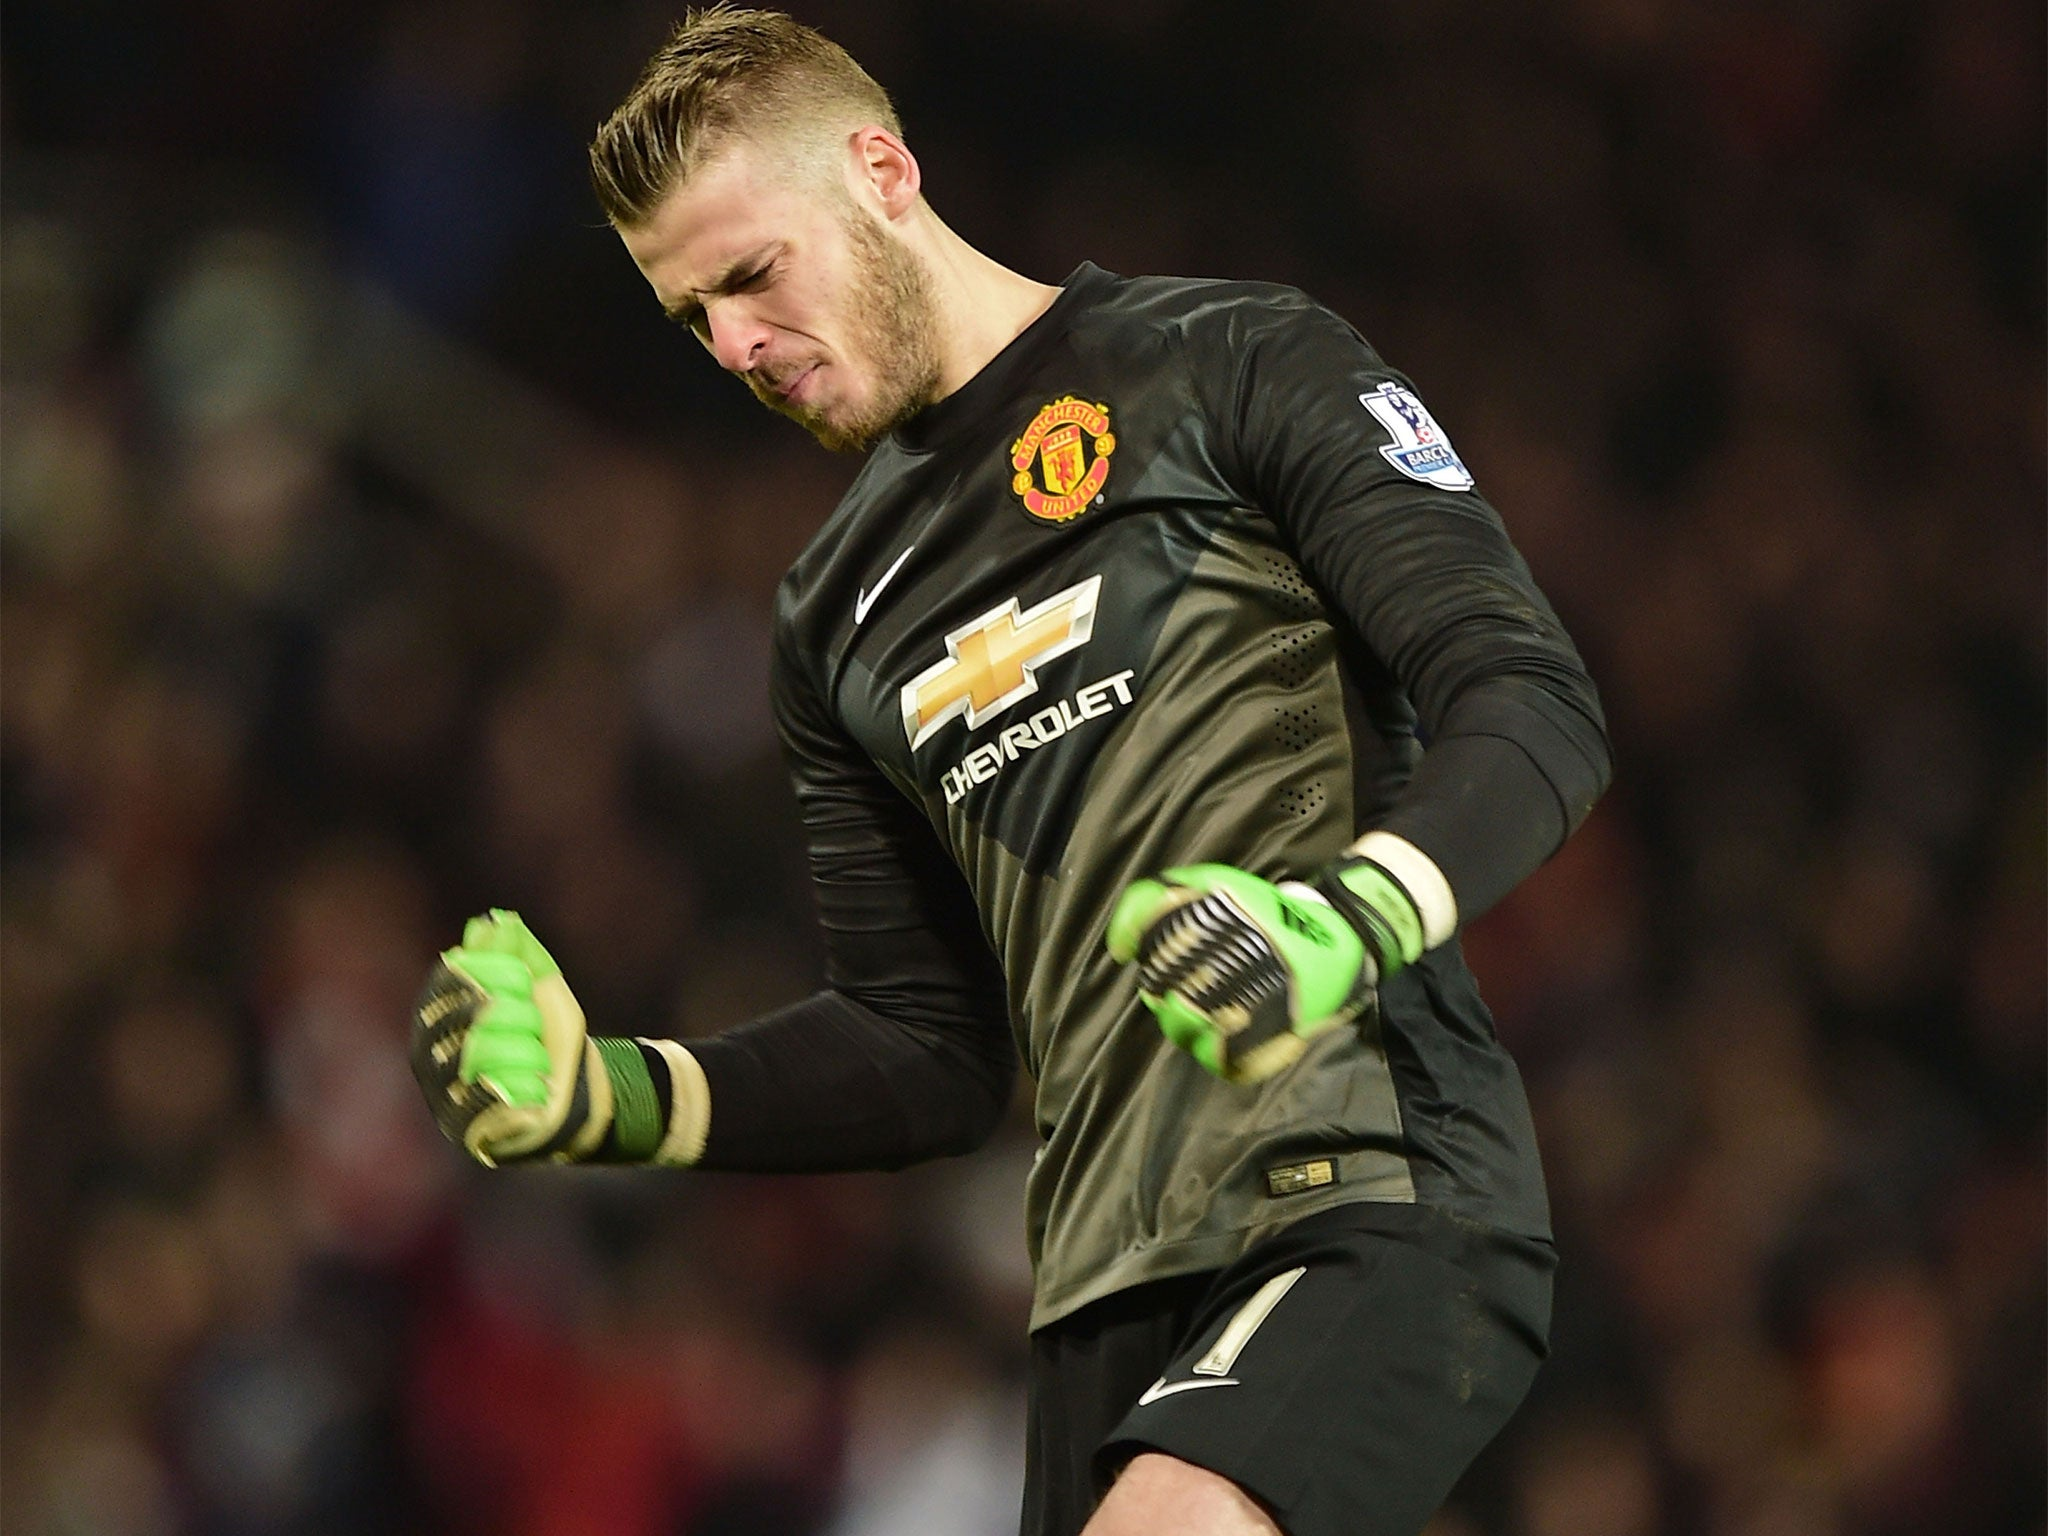 David De Gea is the most important goalkeeper in the world says